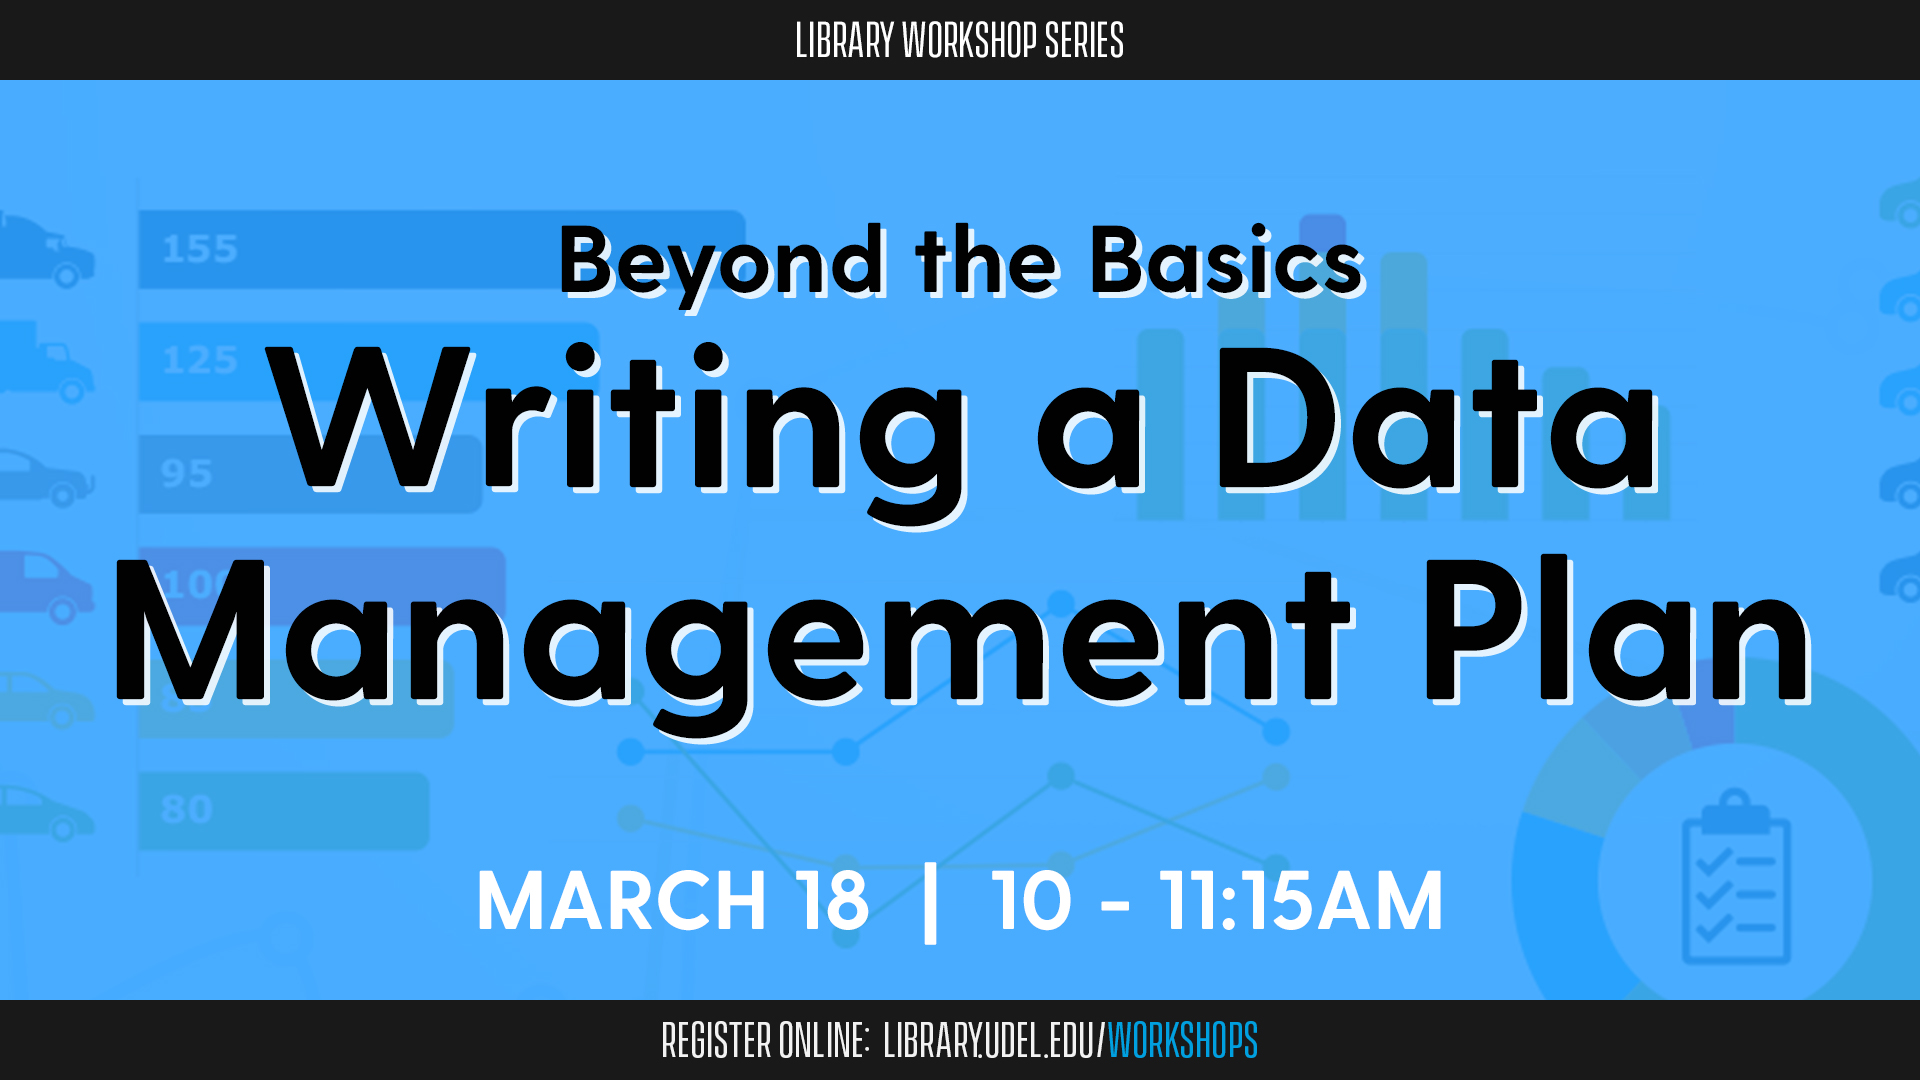 Beyond the Basics: Writing a Data Management Plan